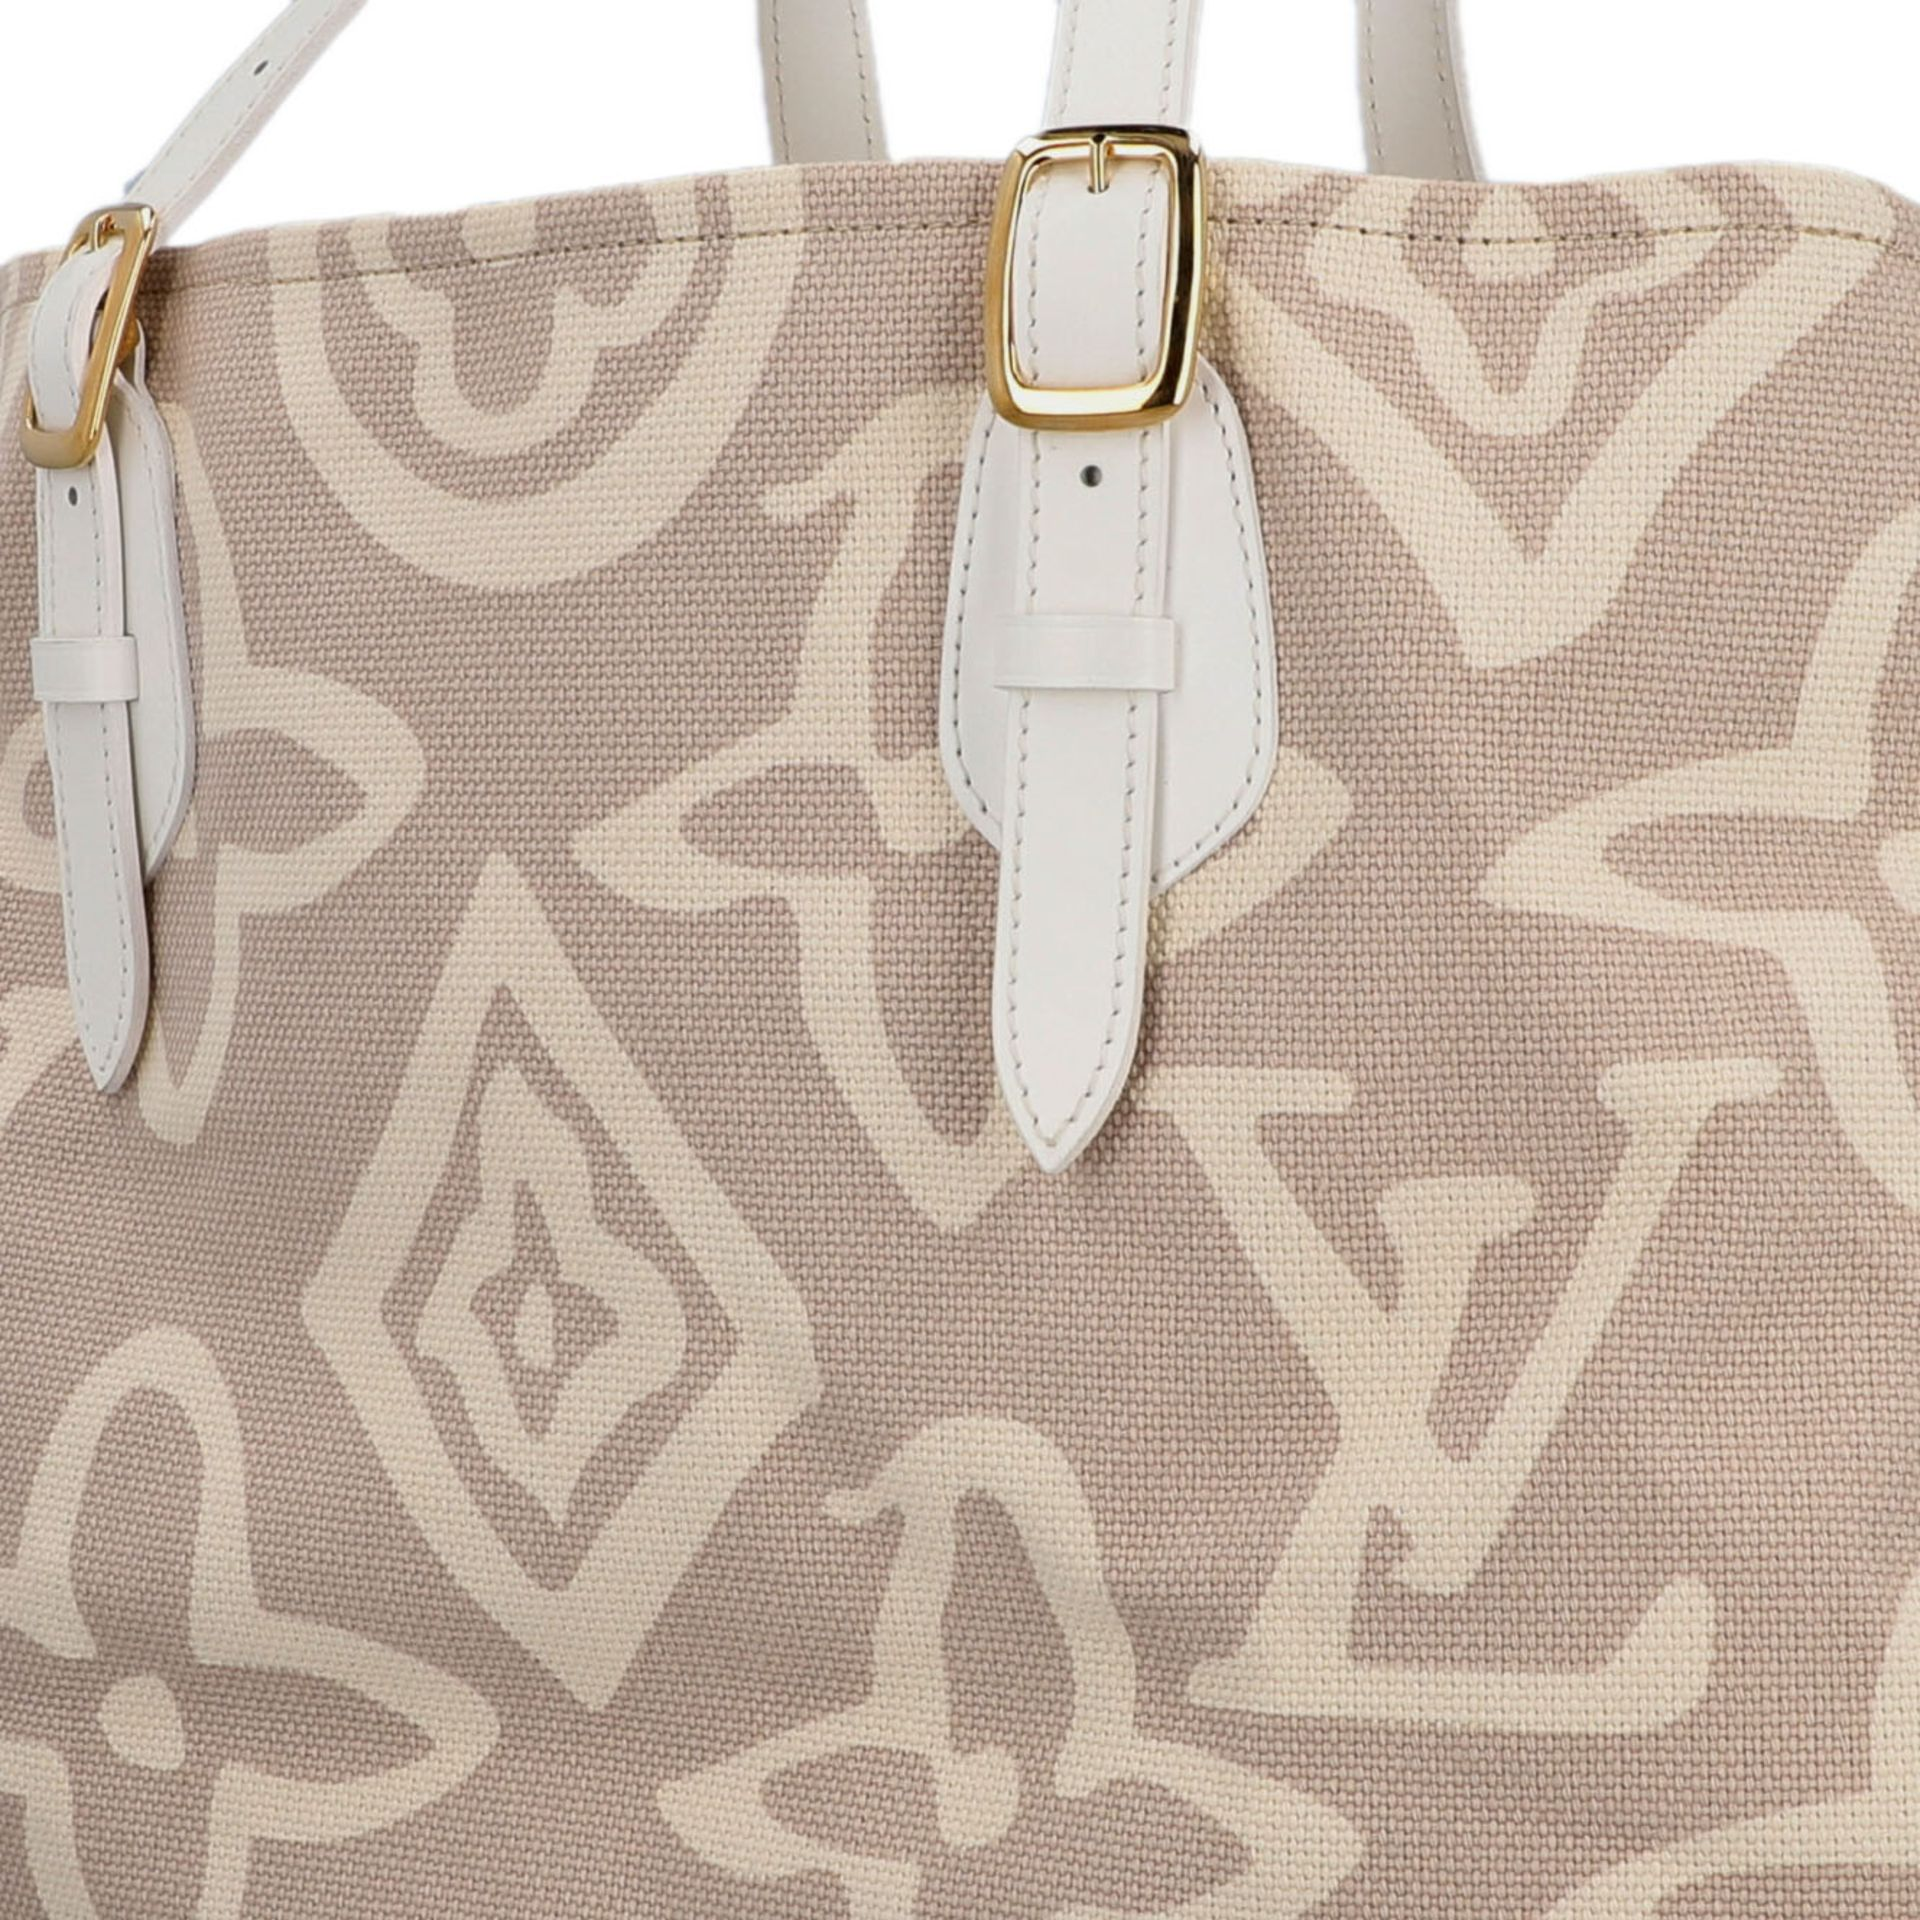 "LOUIS VUITTON Shopper ""TAHITIENNE GM"", Koll.: 2008 Designed by Marc Jacobs, inspiriert - Image 7 of 9"